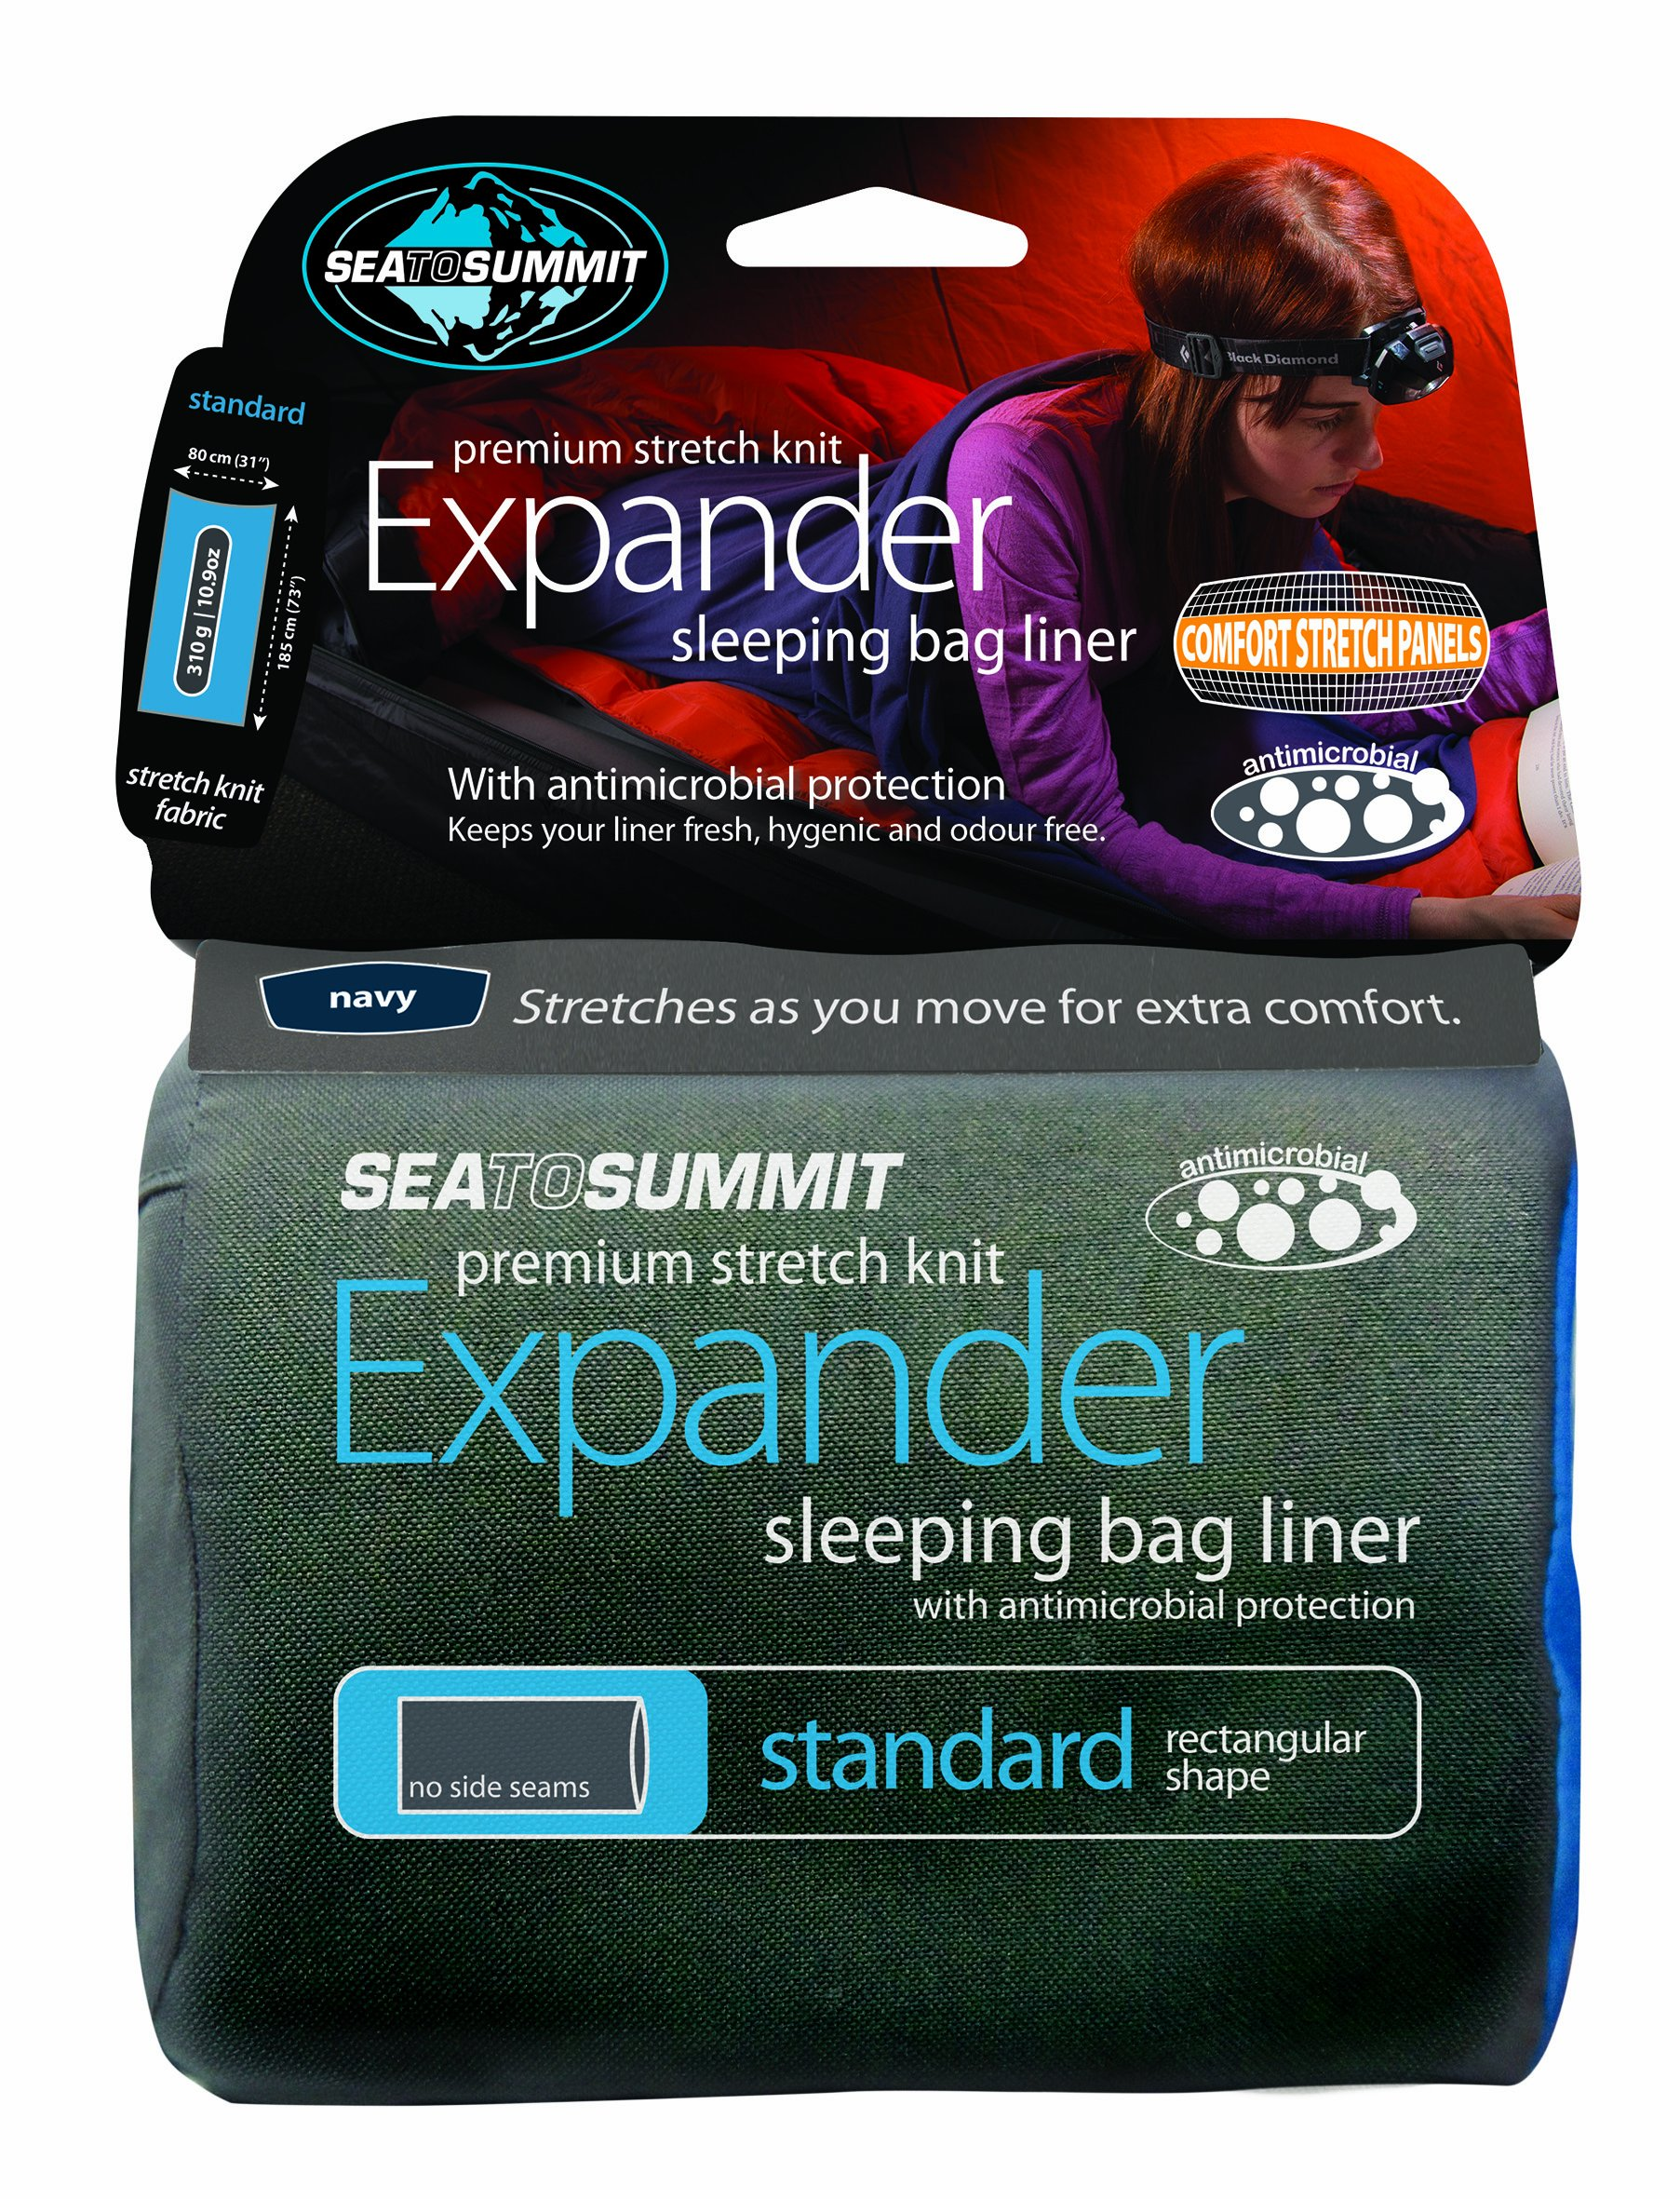 Sea to Summit Premium Stretch Knit Expander Liner, Pacific Blue, Rectangular (73 x 36in) by Sea to Summit